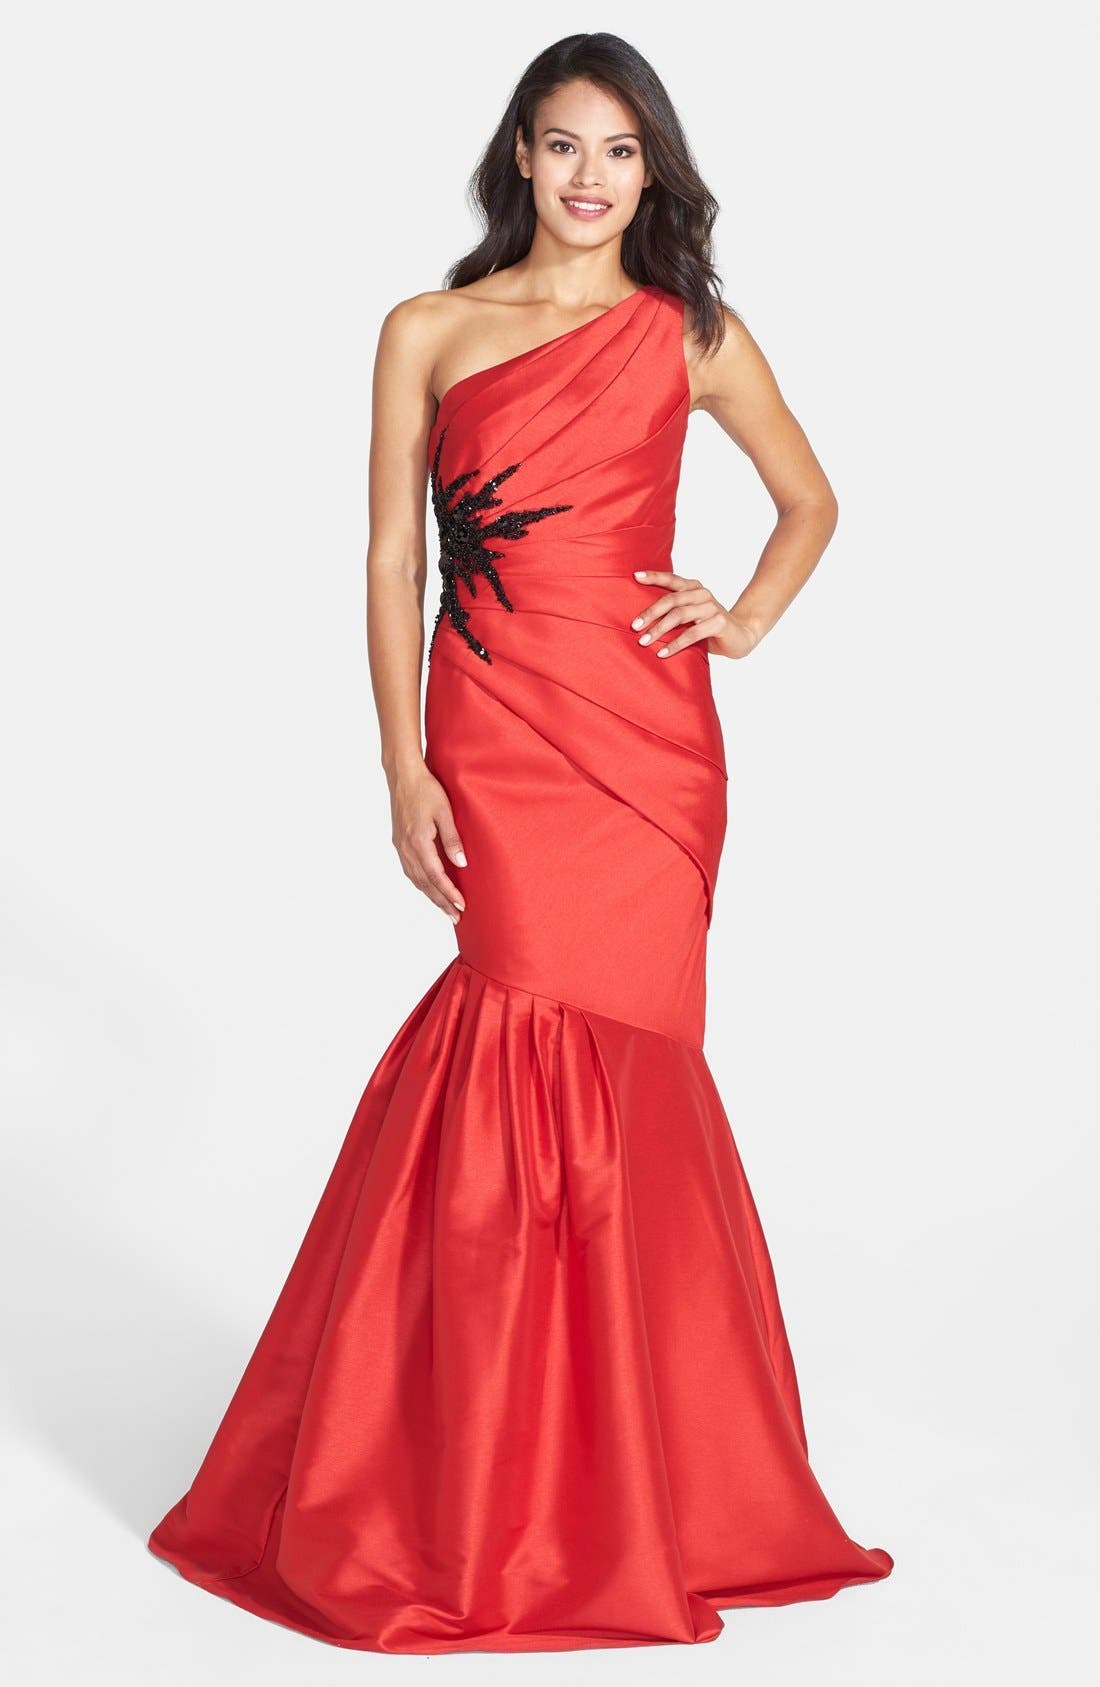 Main Image - ML Monique Lhuillier Embellished One-Shoulder Faille Mermaid Gown